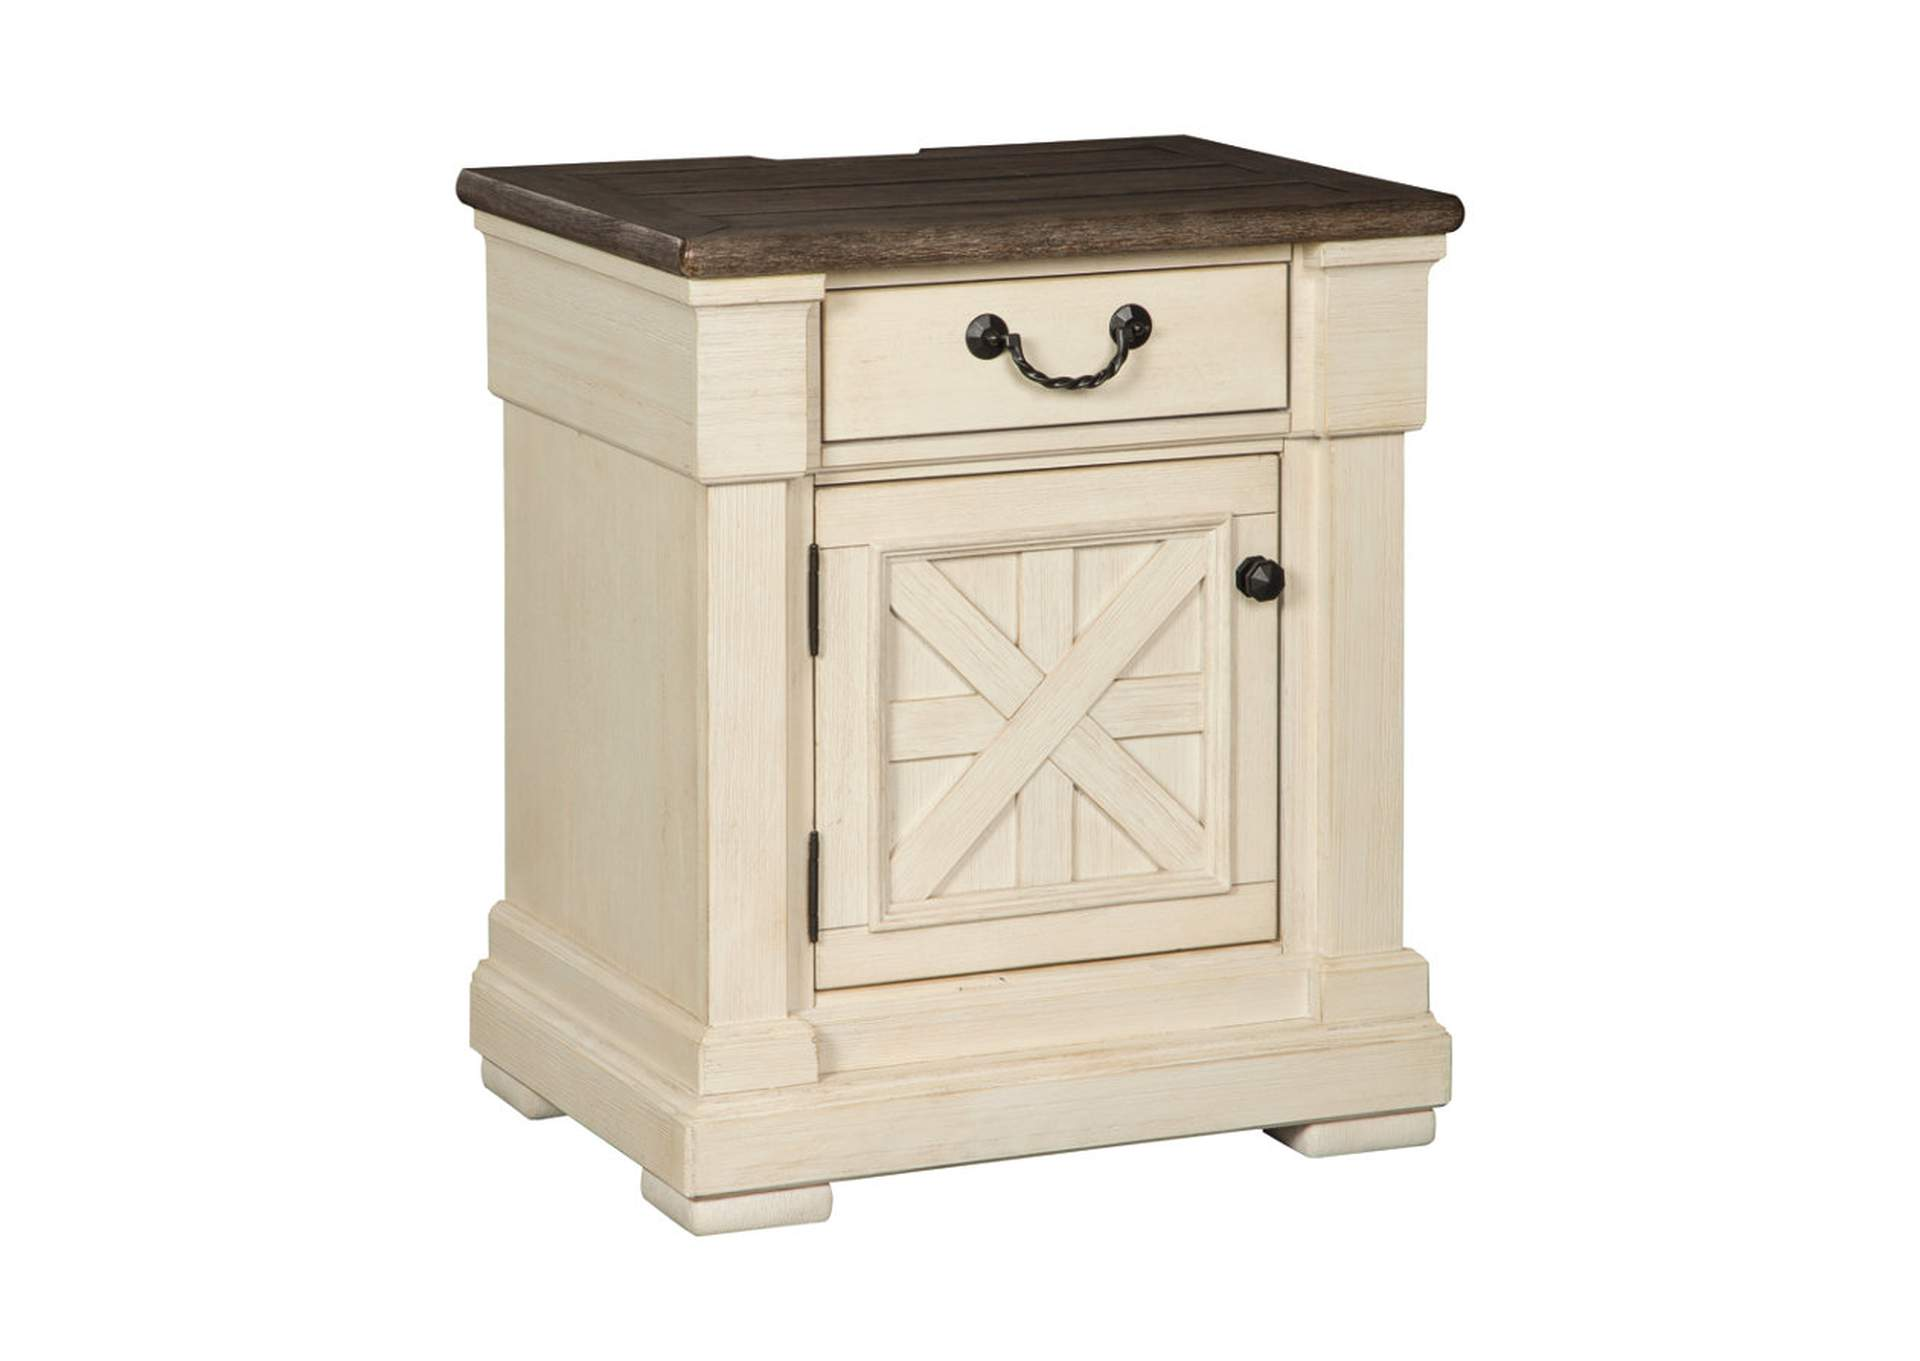 Bolanburg Antique White 1 Drawer Nightstand,Signature Design By Ashley